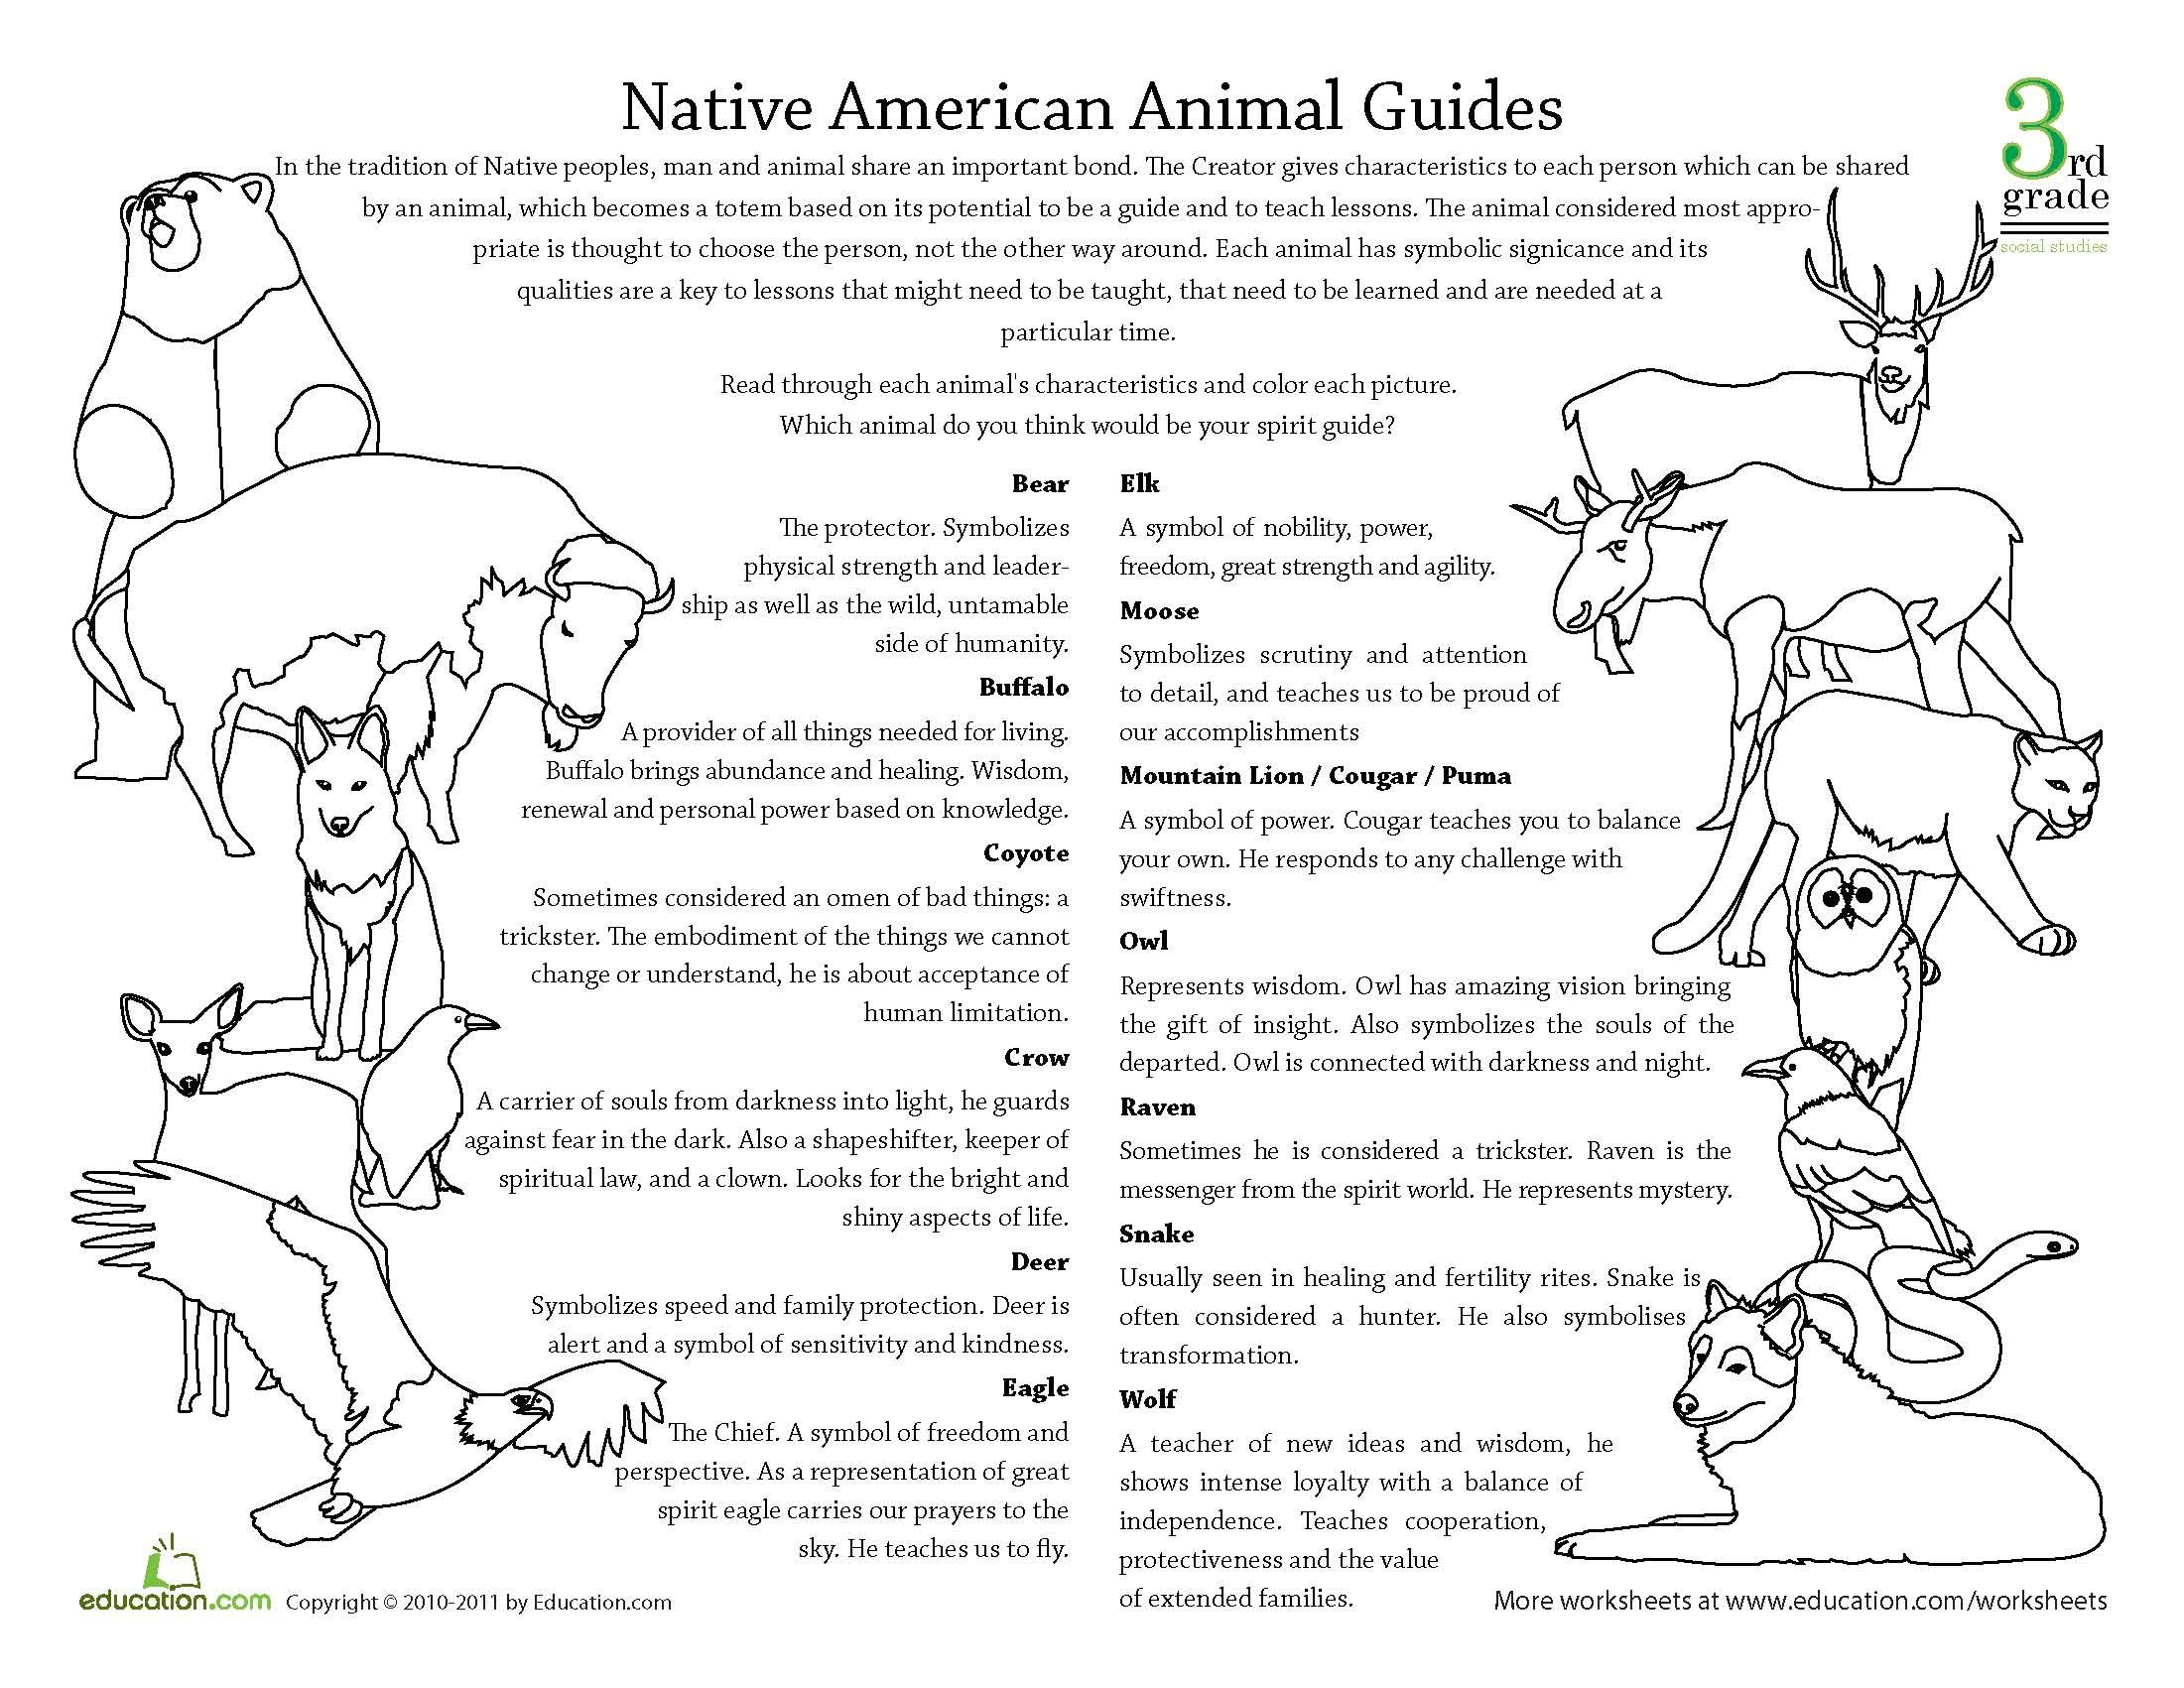 medium resolution of http://api.ning.com/files/7U-JG7rftqSKt-SB74-Nd2vcbytwDfleeO0exFJo1gYdvK0GUwm5e-eLoRXMo…    Native american animals